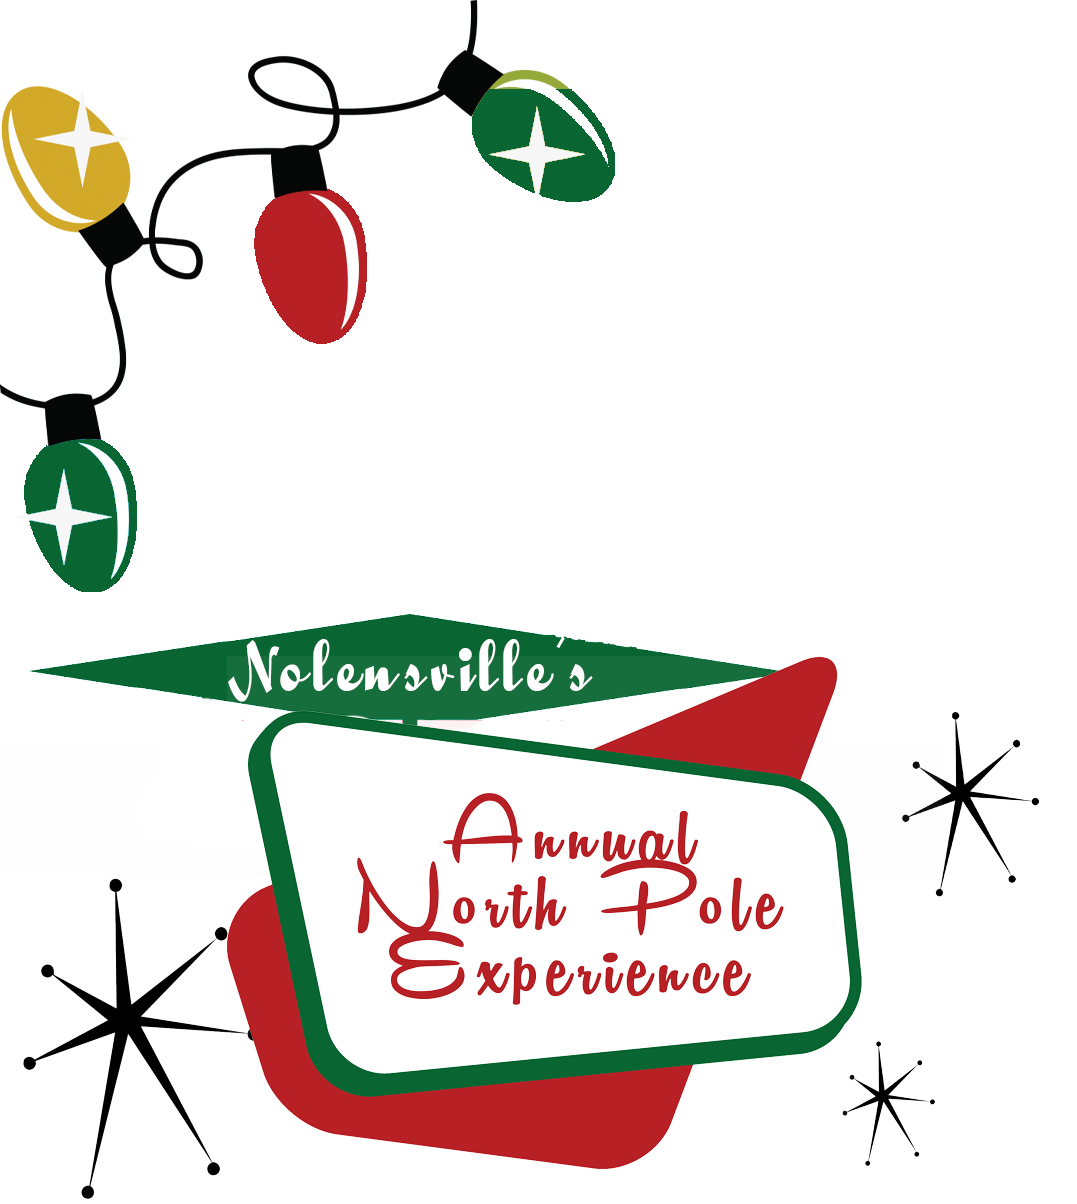 north pole experience 2018 MCM design.png